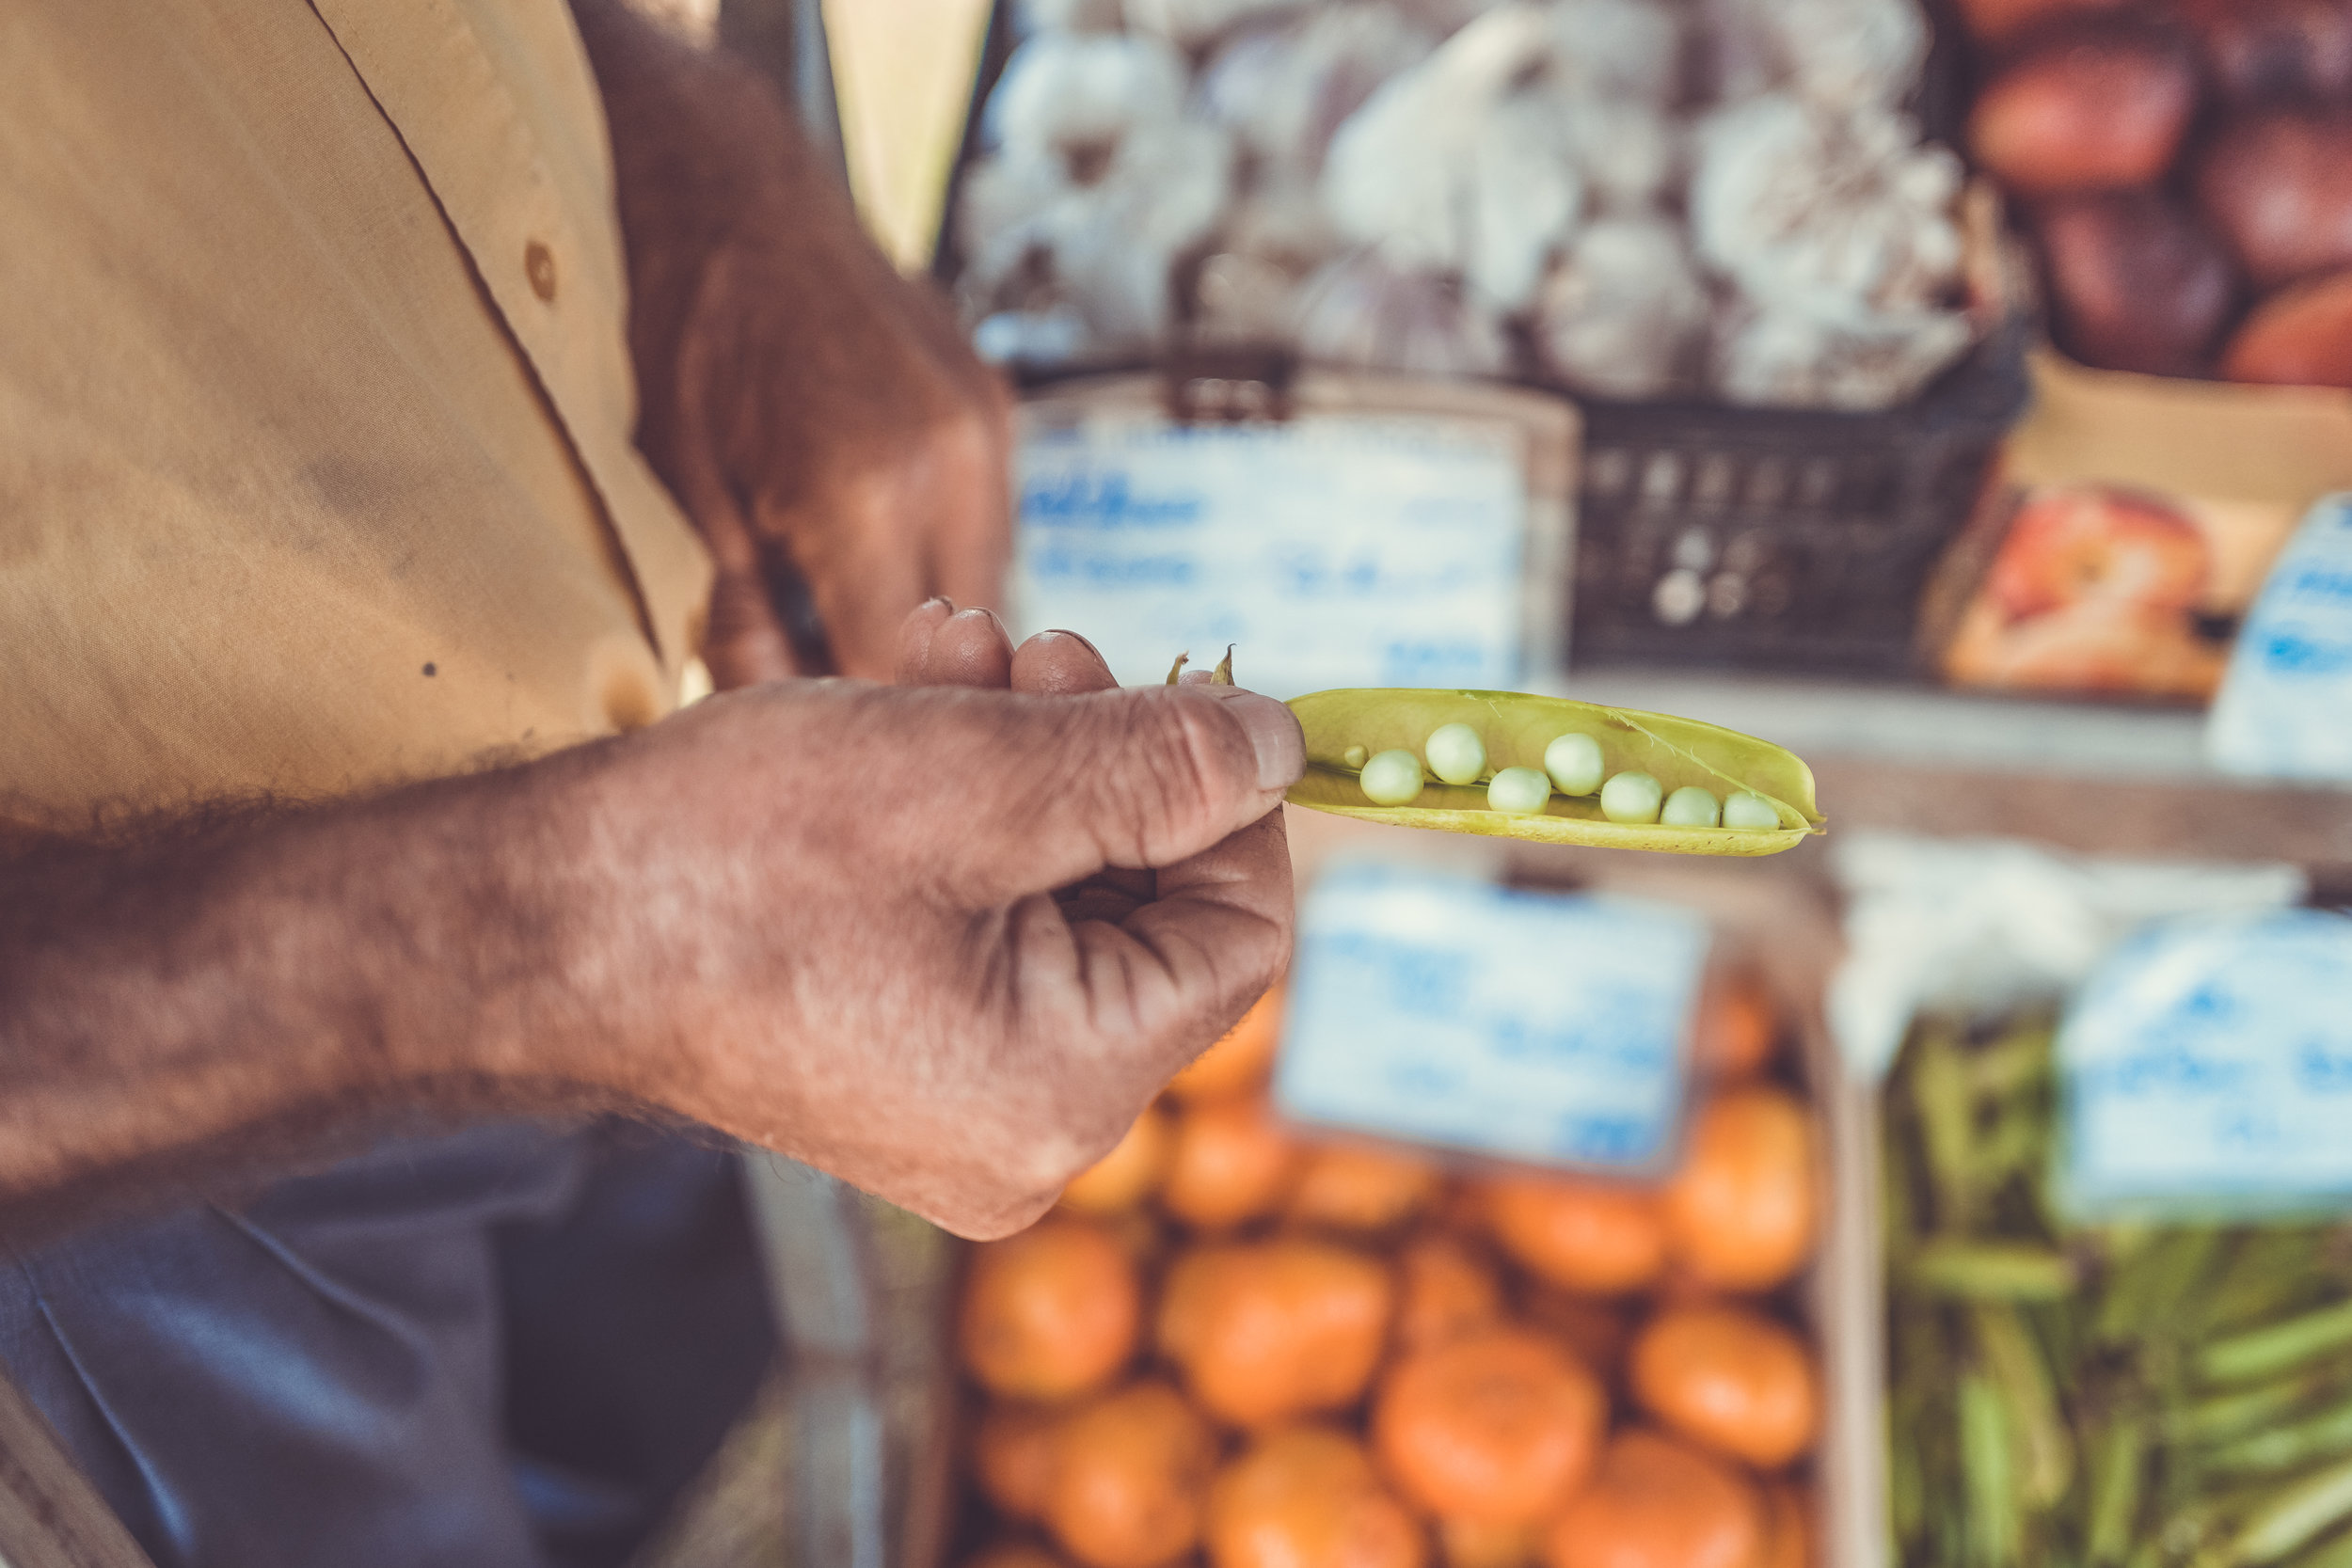 A person holding pea pods with peas still inside.